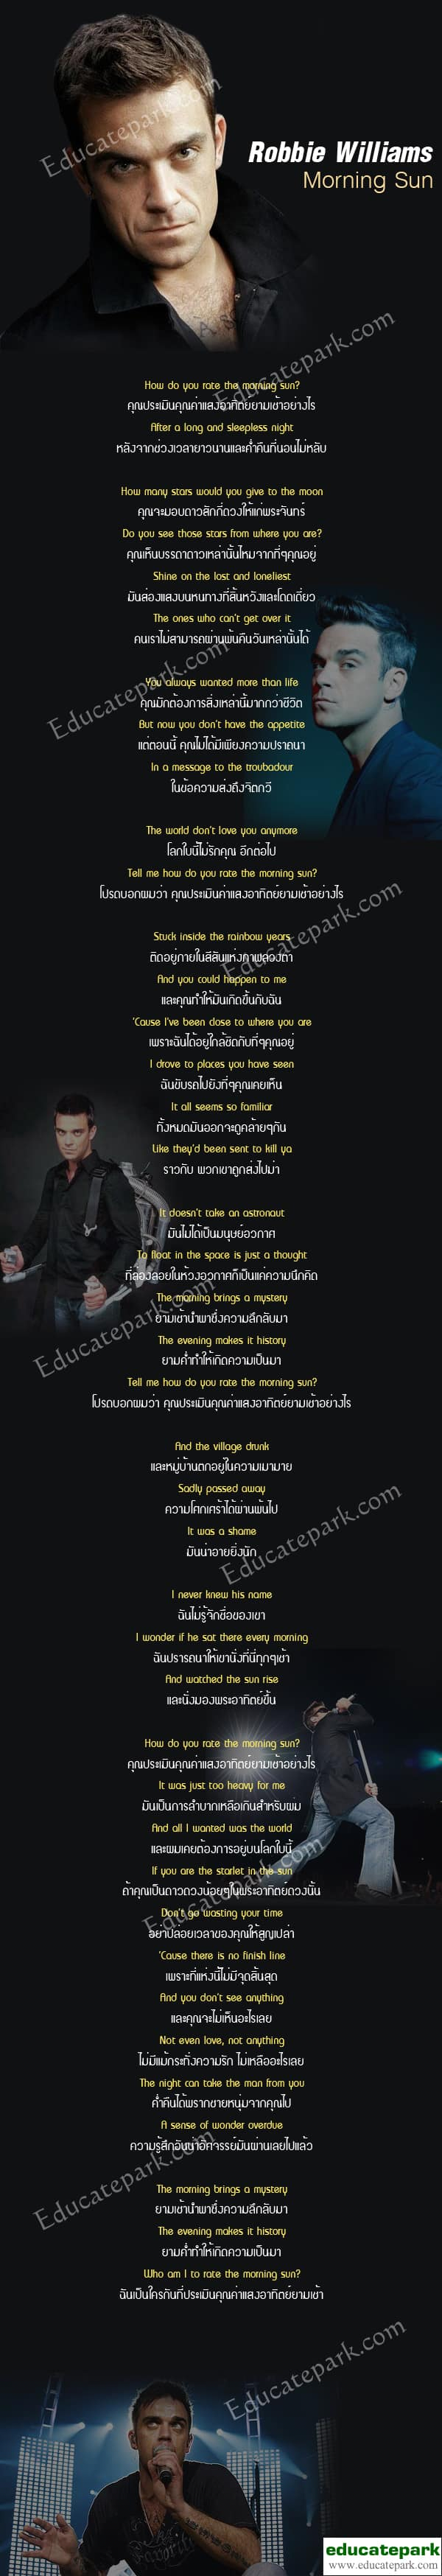 แปลเพลง Morning Sun - Robbie Williams